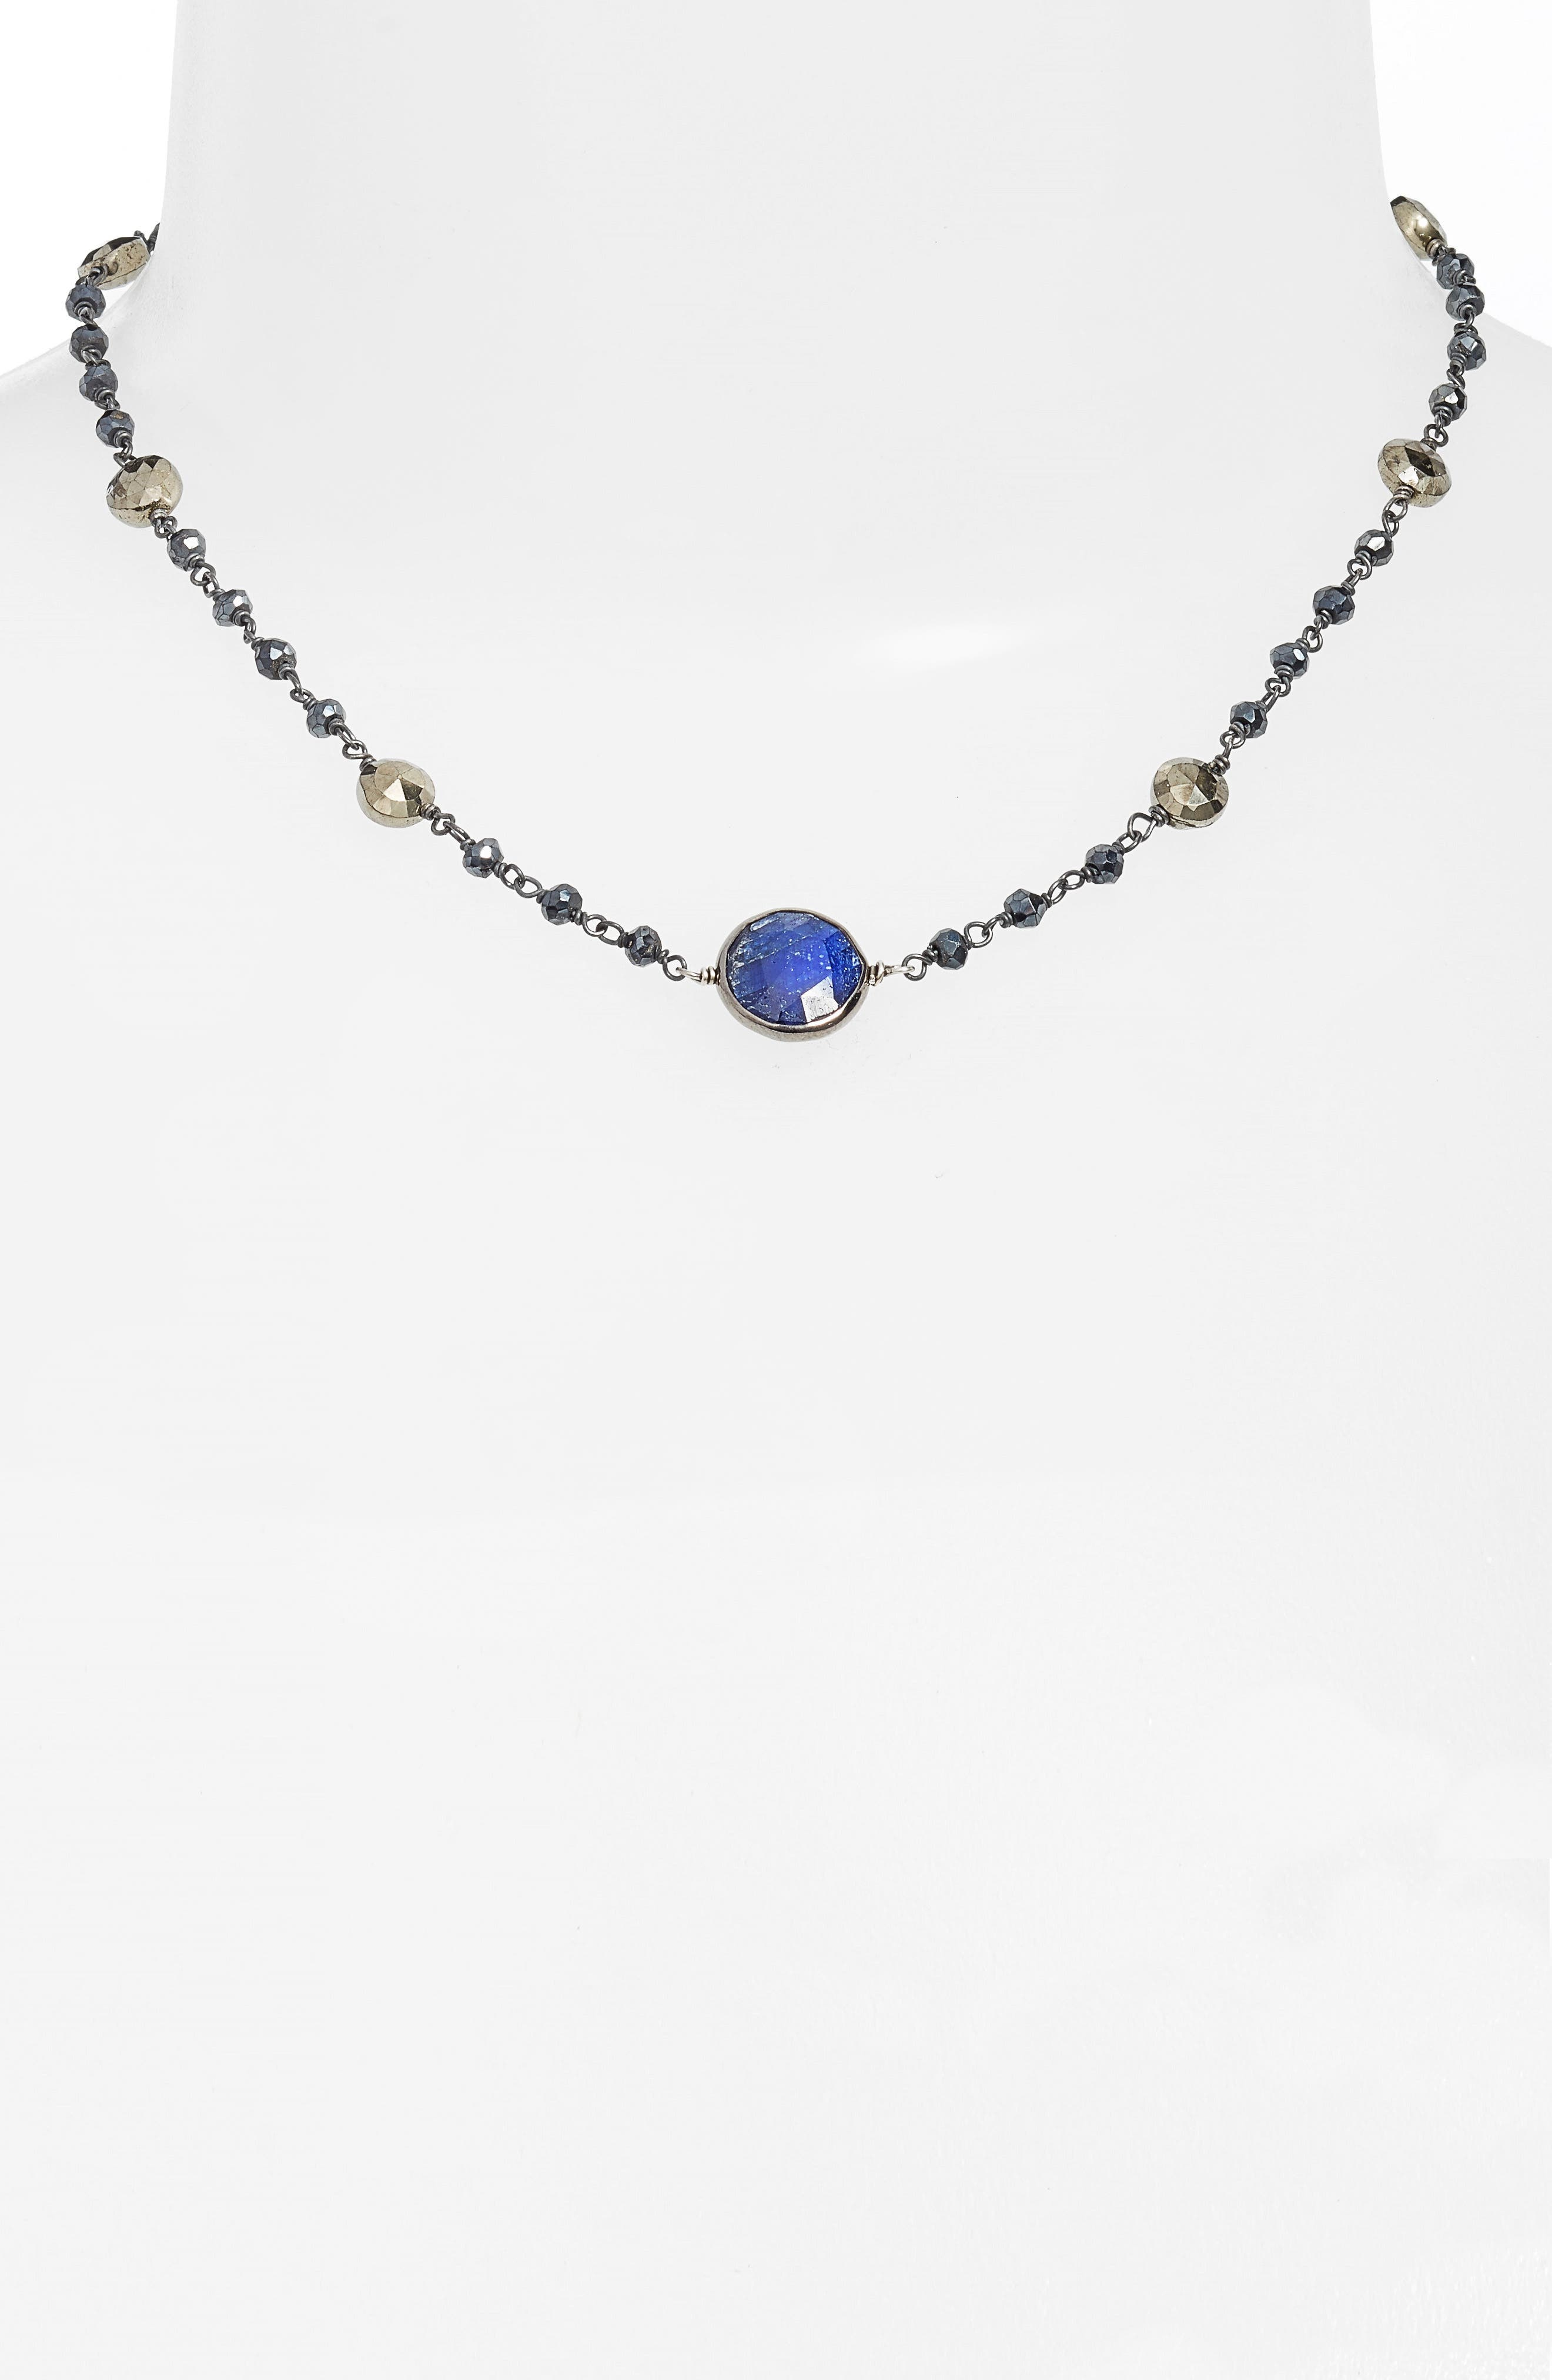 Semiprecious Stone Collar Necklace,                             Alternate thumbnail 2, color,                             MYSTIC BLACK SPINEL/ SAPPHIRE